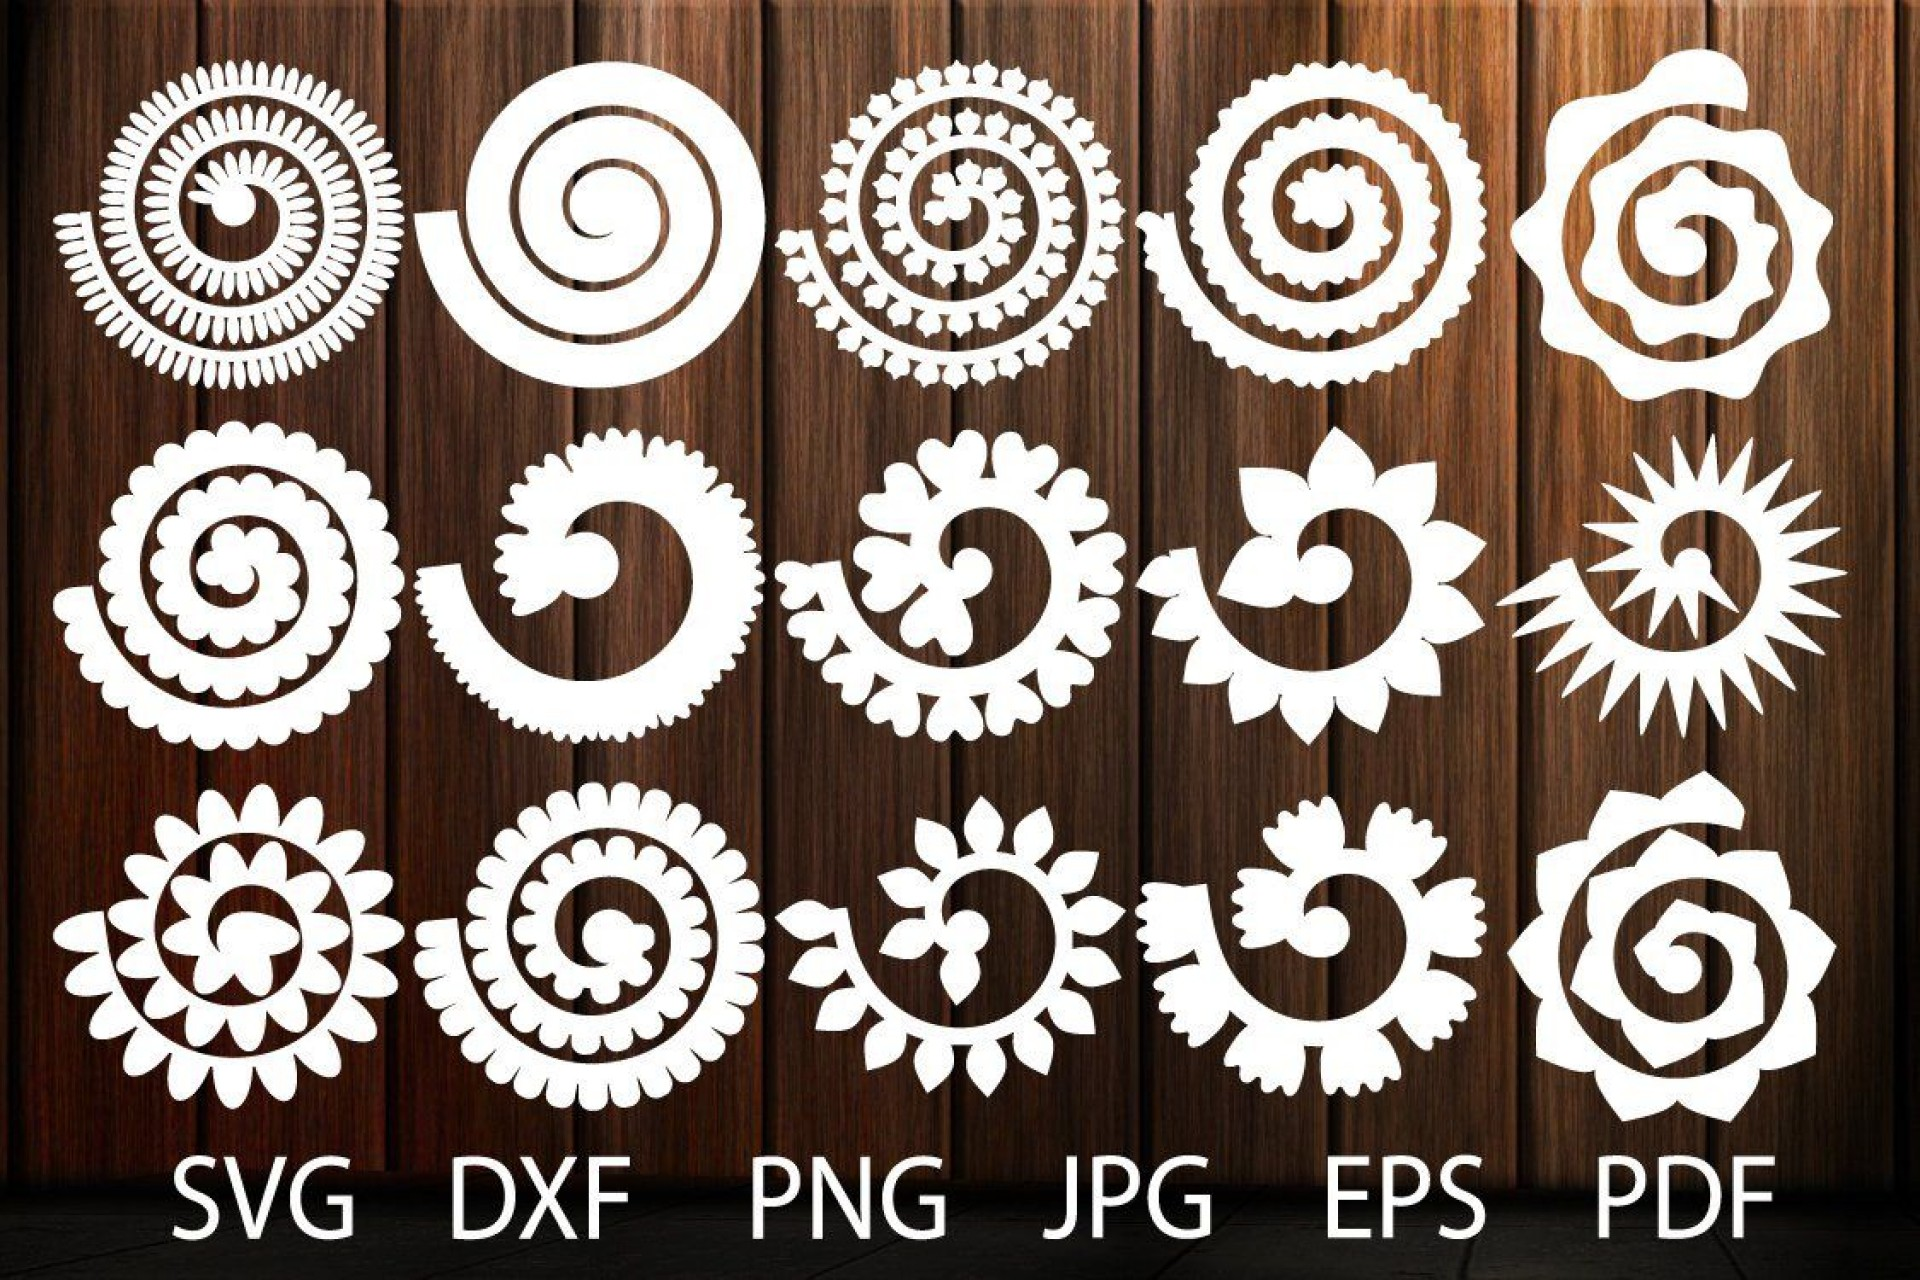 000 Formidable Free Rolled Paper Flower Template For Cricut Photo 1920